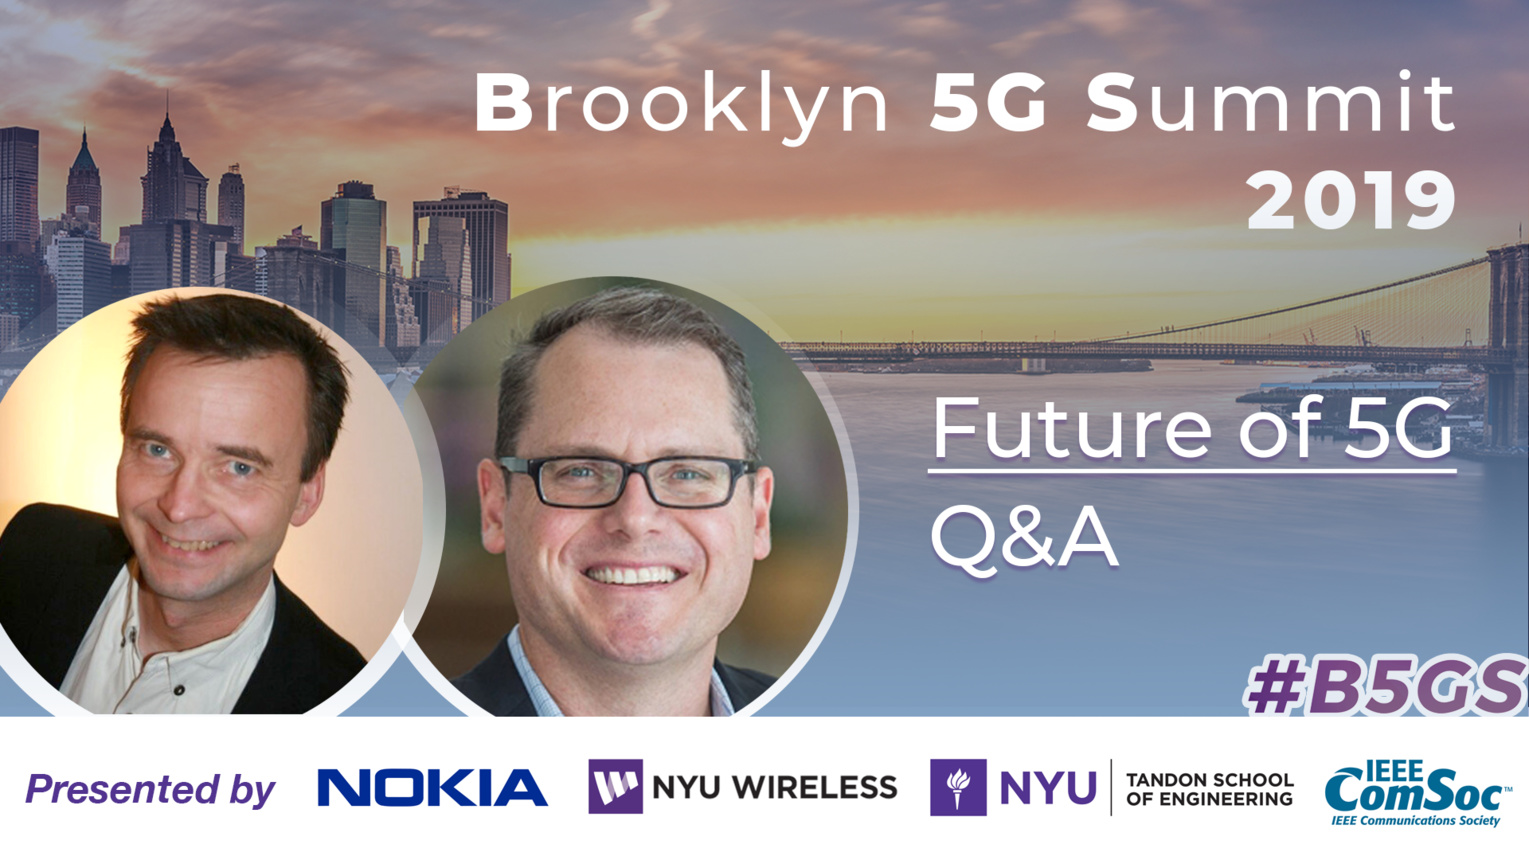 Q and A: Future of 5G - B5GS 2019